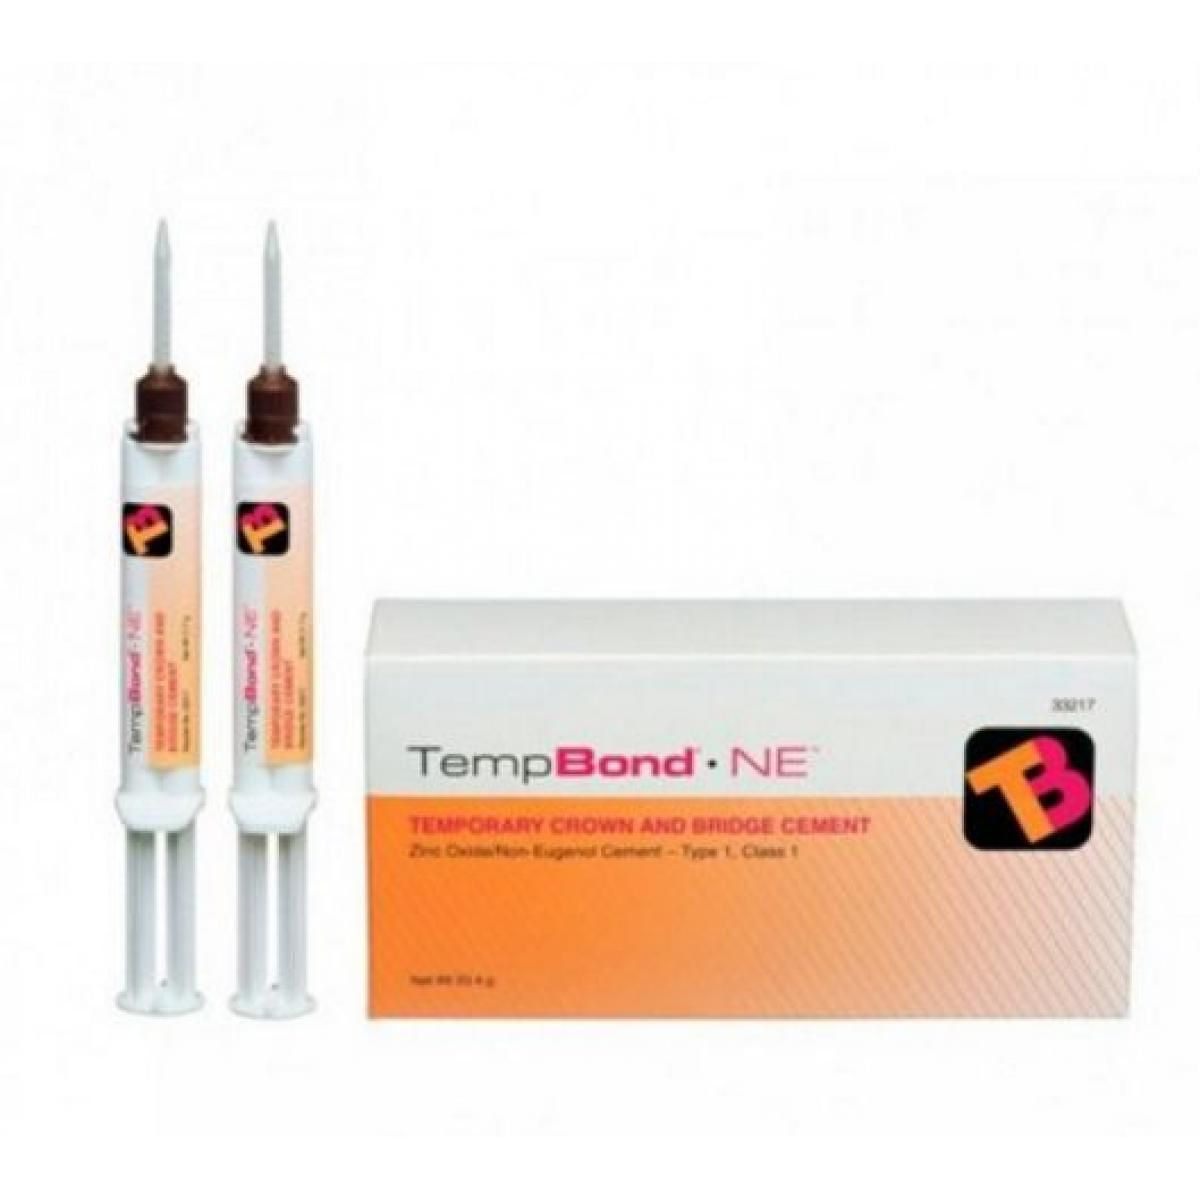 TEMP BOND NE AUTOMIX KERR -